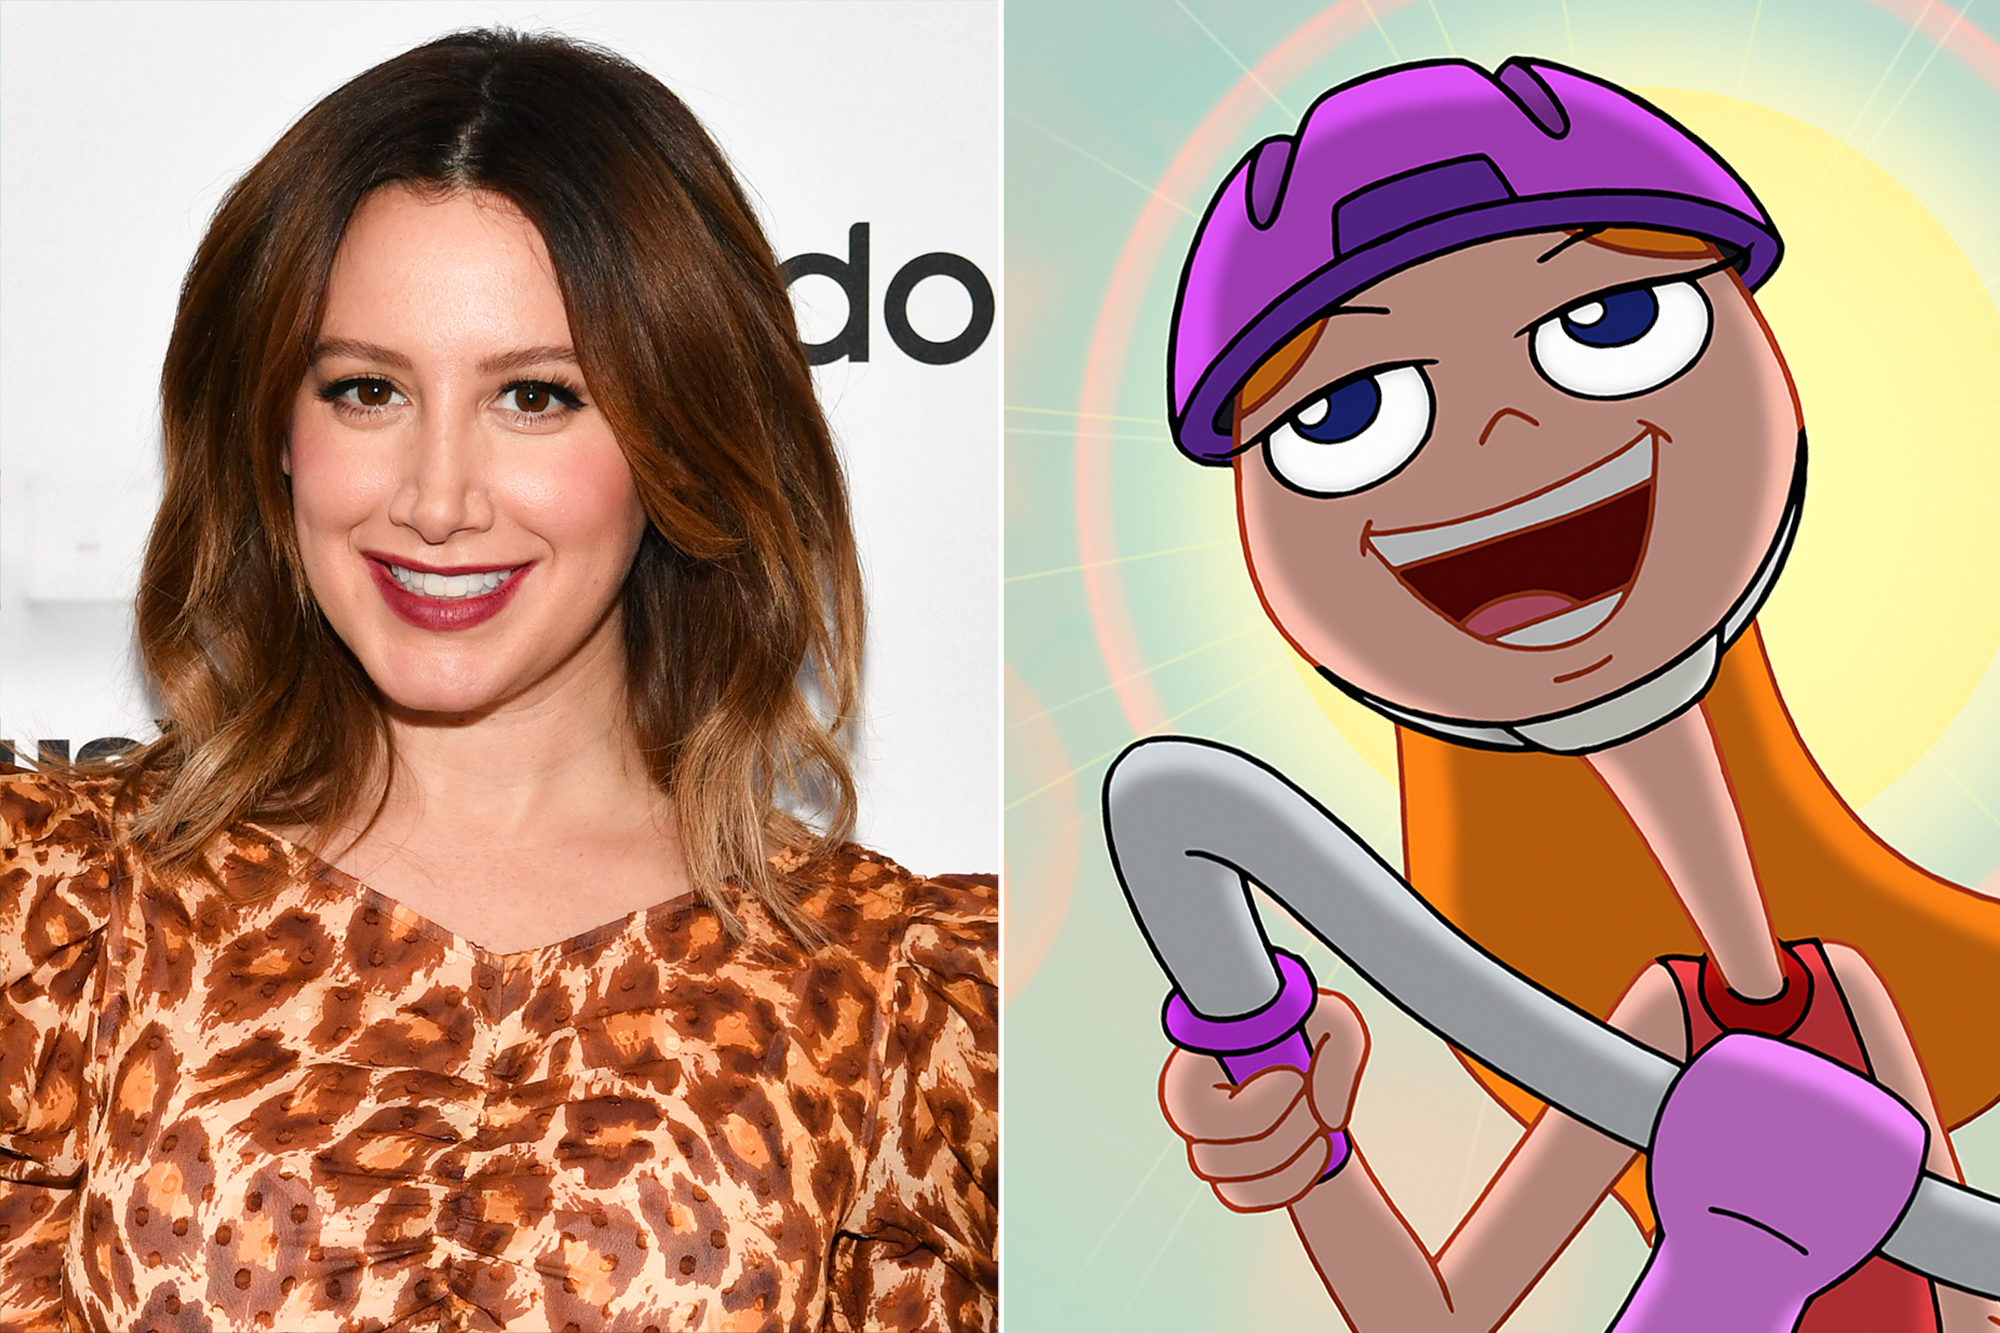 Ashley Tisdale, Phineas and Ferb